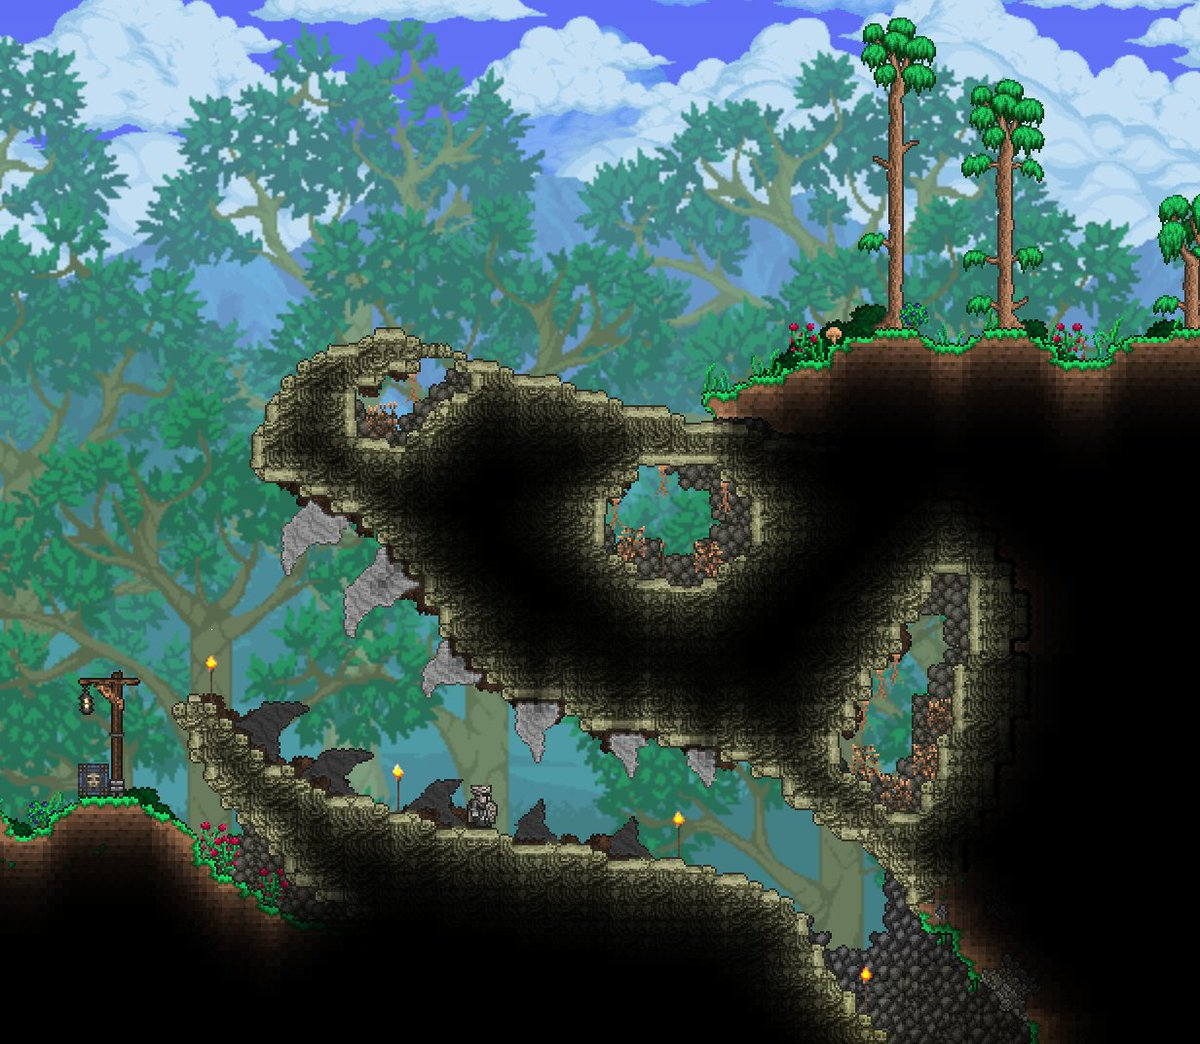 R Terraria On Twitter Dungeon Entrance Https T Co Vhbiuo9hnb A guide that will teach you how to fight the dungeon guardian and obtain his bone key for the baby skeletron head pet, by utilizing. r terraria on twitter dungeon